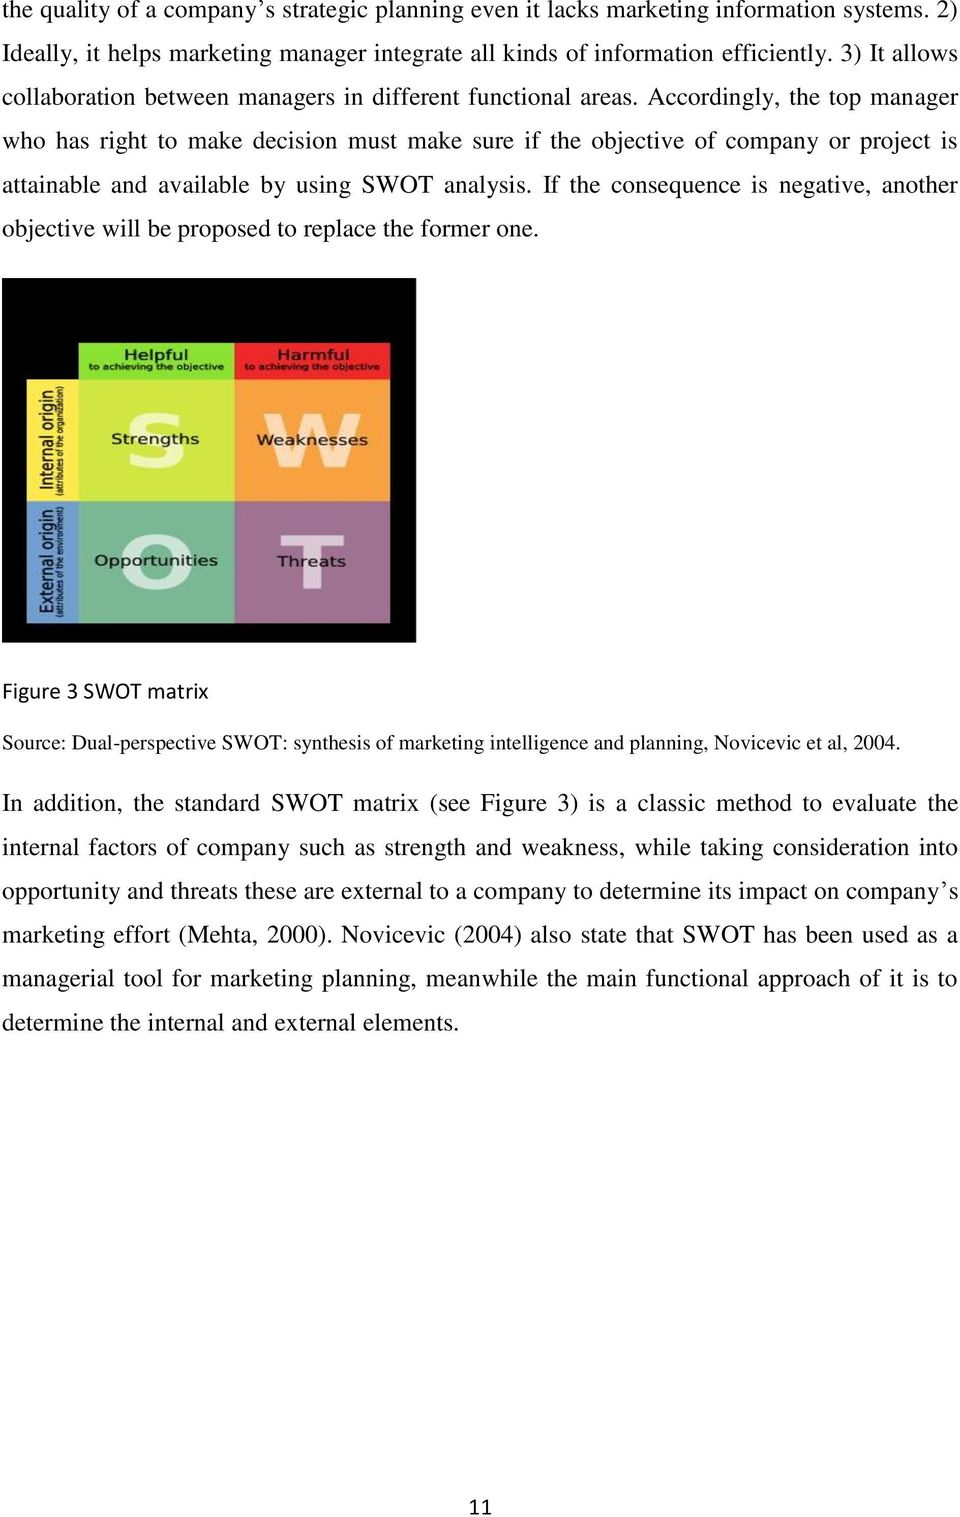 dhl case analysis Access to case studies expires six months after purchase date publication date: february 05, 1998 in the wake of a highly successful quarter, senior managers of airborne express, the third largest player in the express mail.